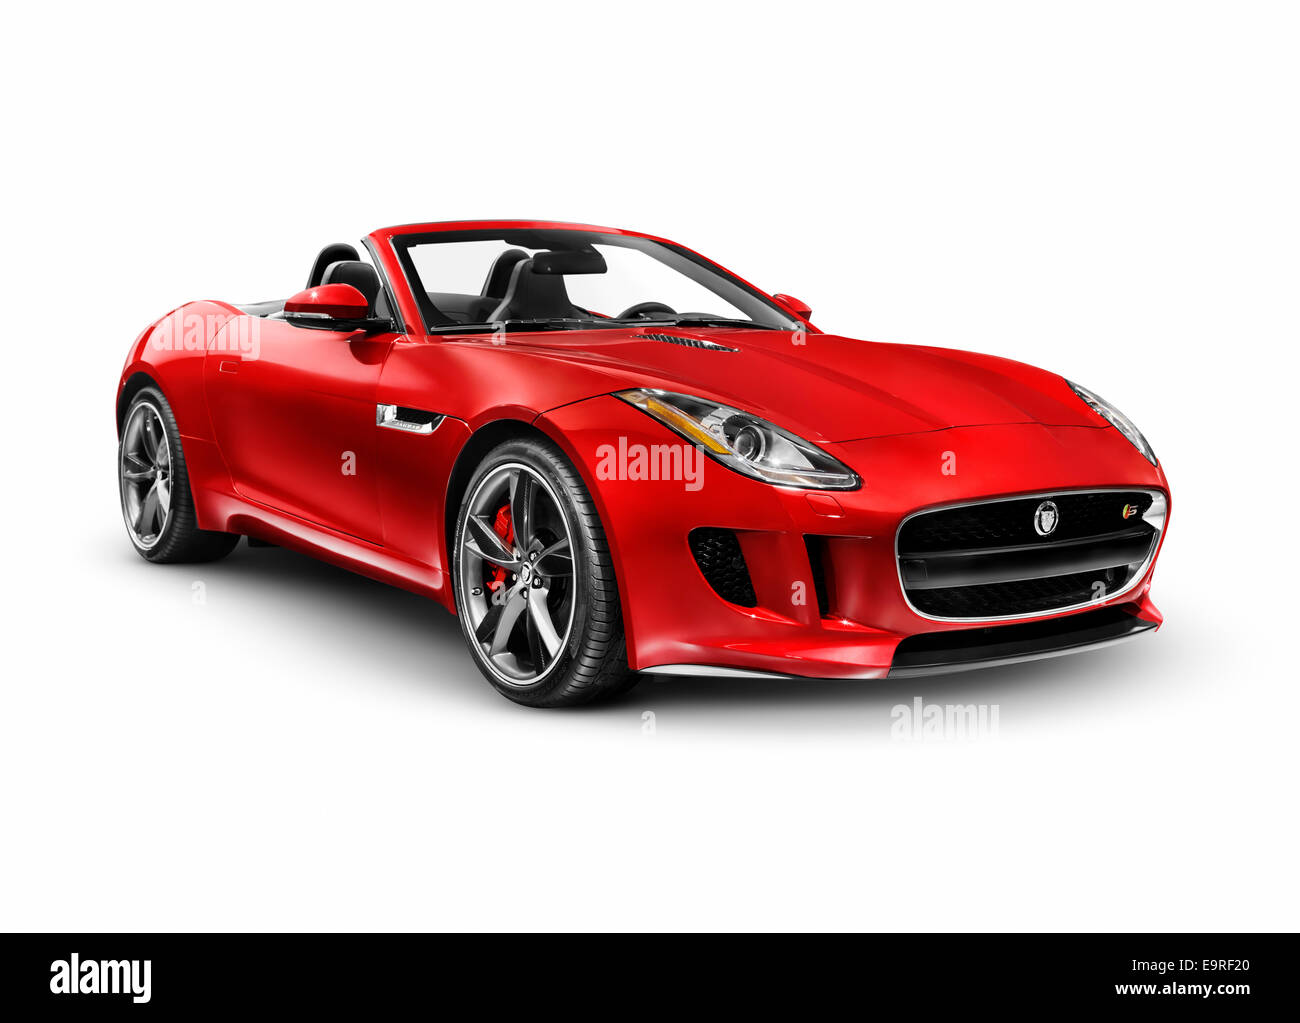 Jaguar F Type Red Red 2014 Jaguar F Type S Luxury Sports Car Isolated On